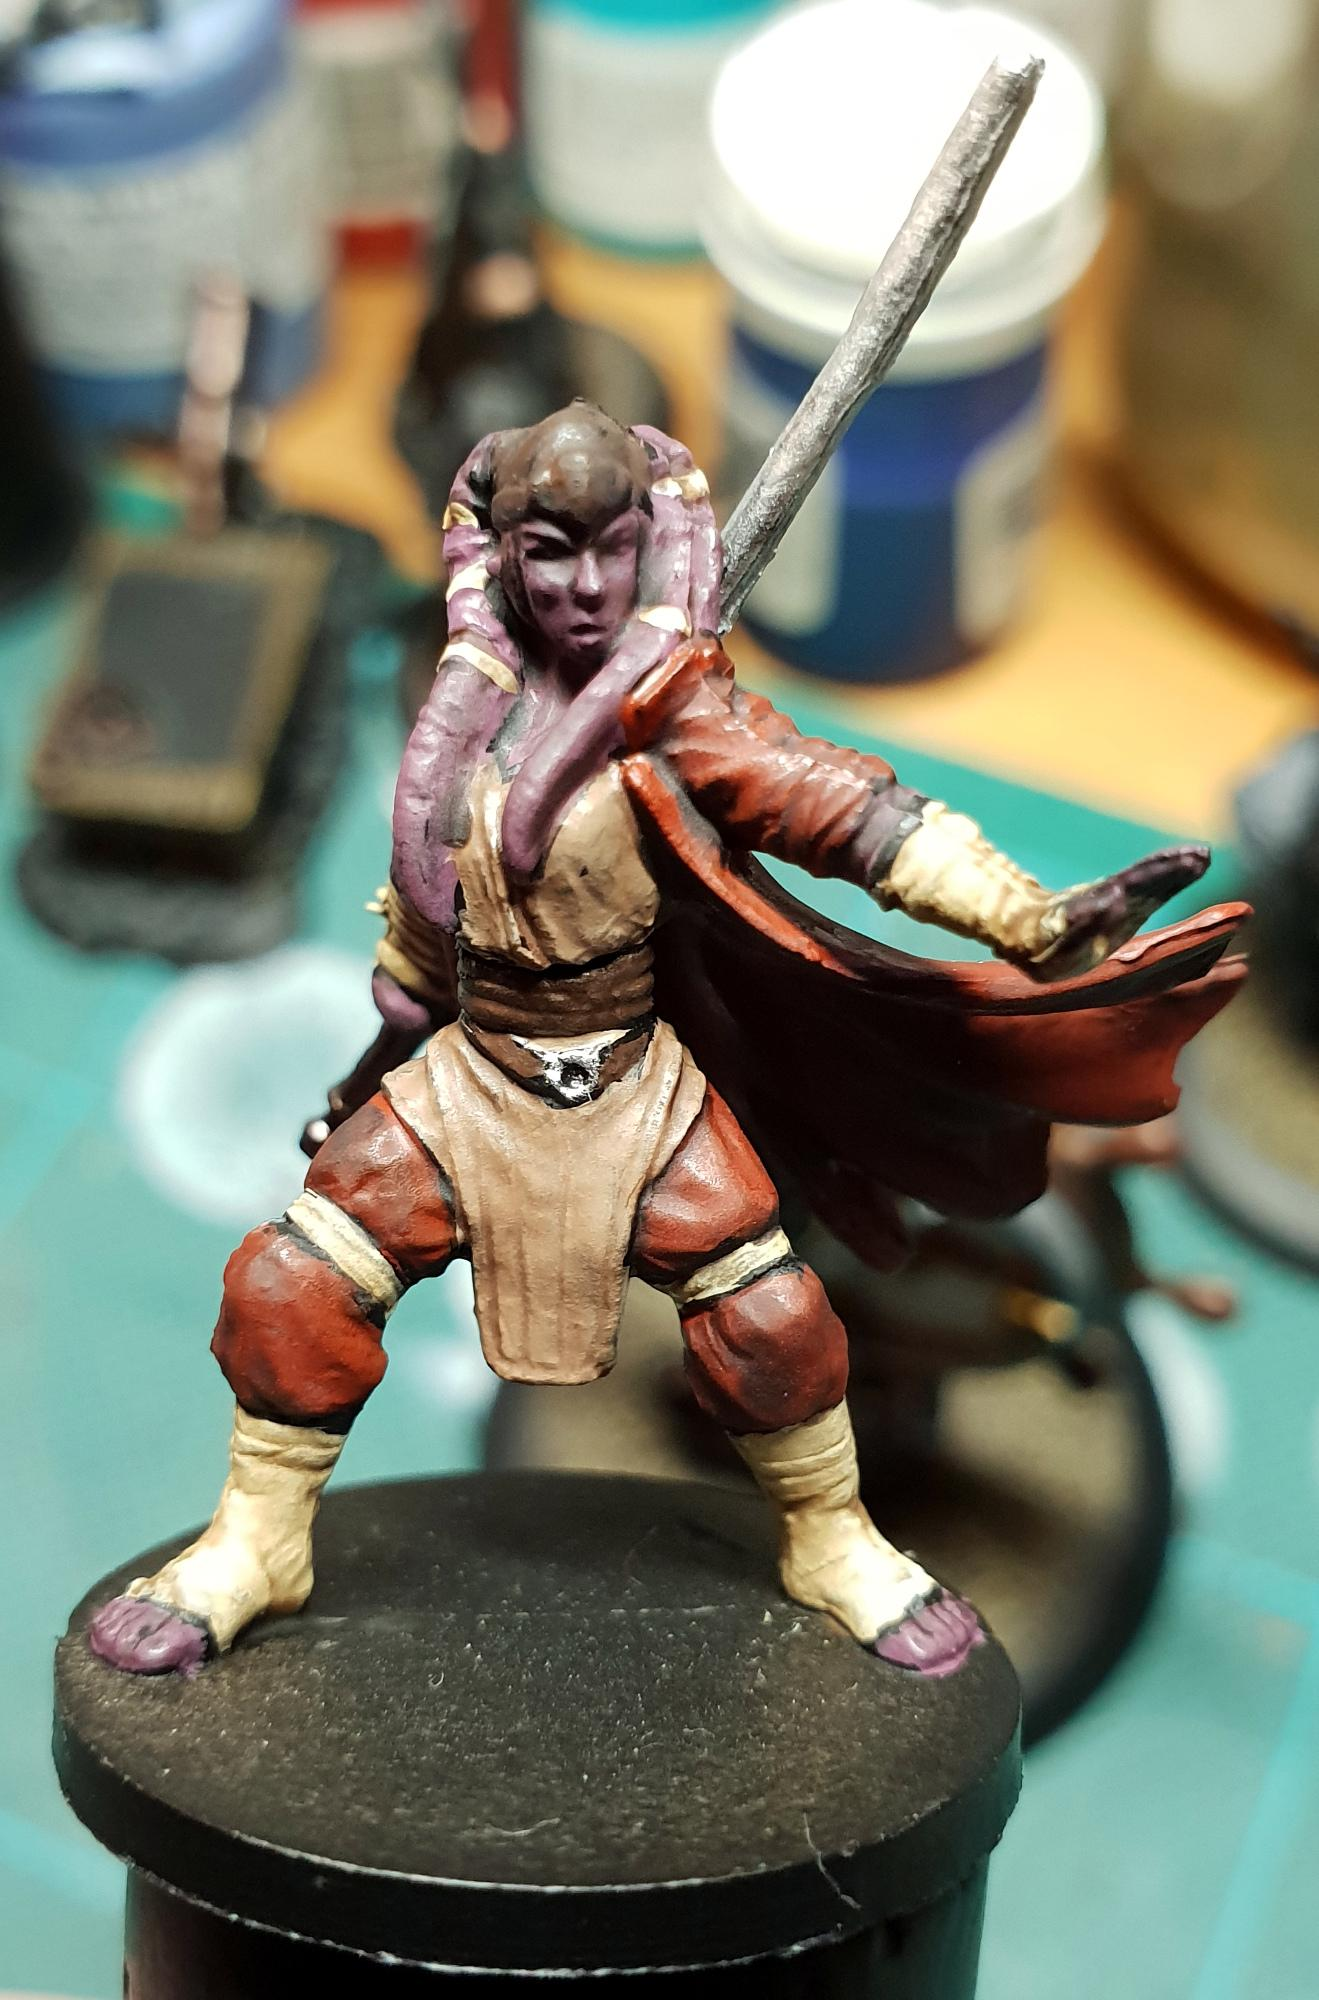 Imperial Assault, Jedi, Twi'lek, Work In Progress